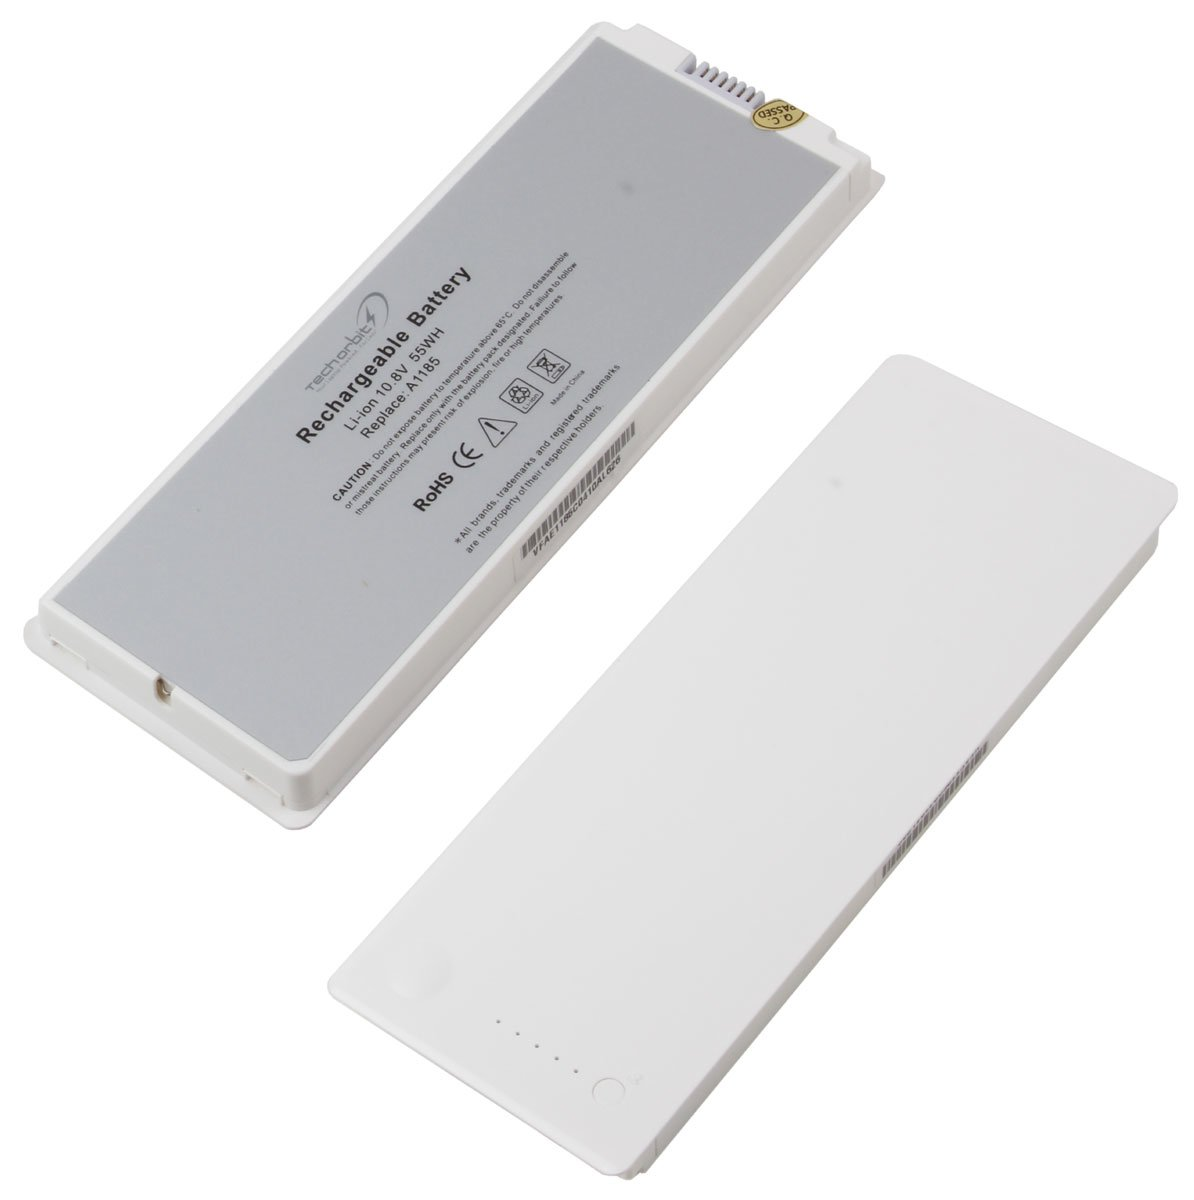 Macbook A1185 Laptop Battery Replacement | $39.89